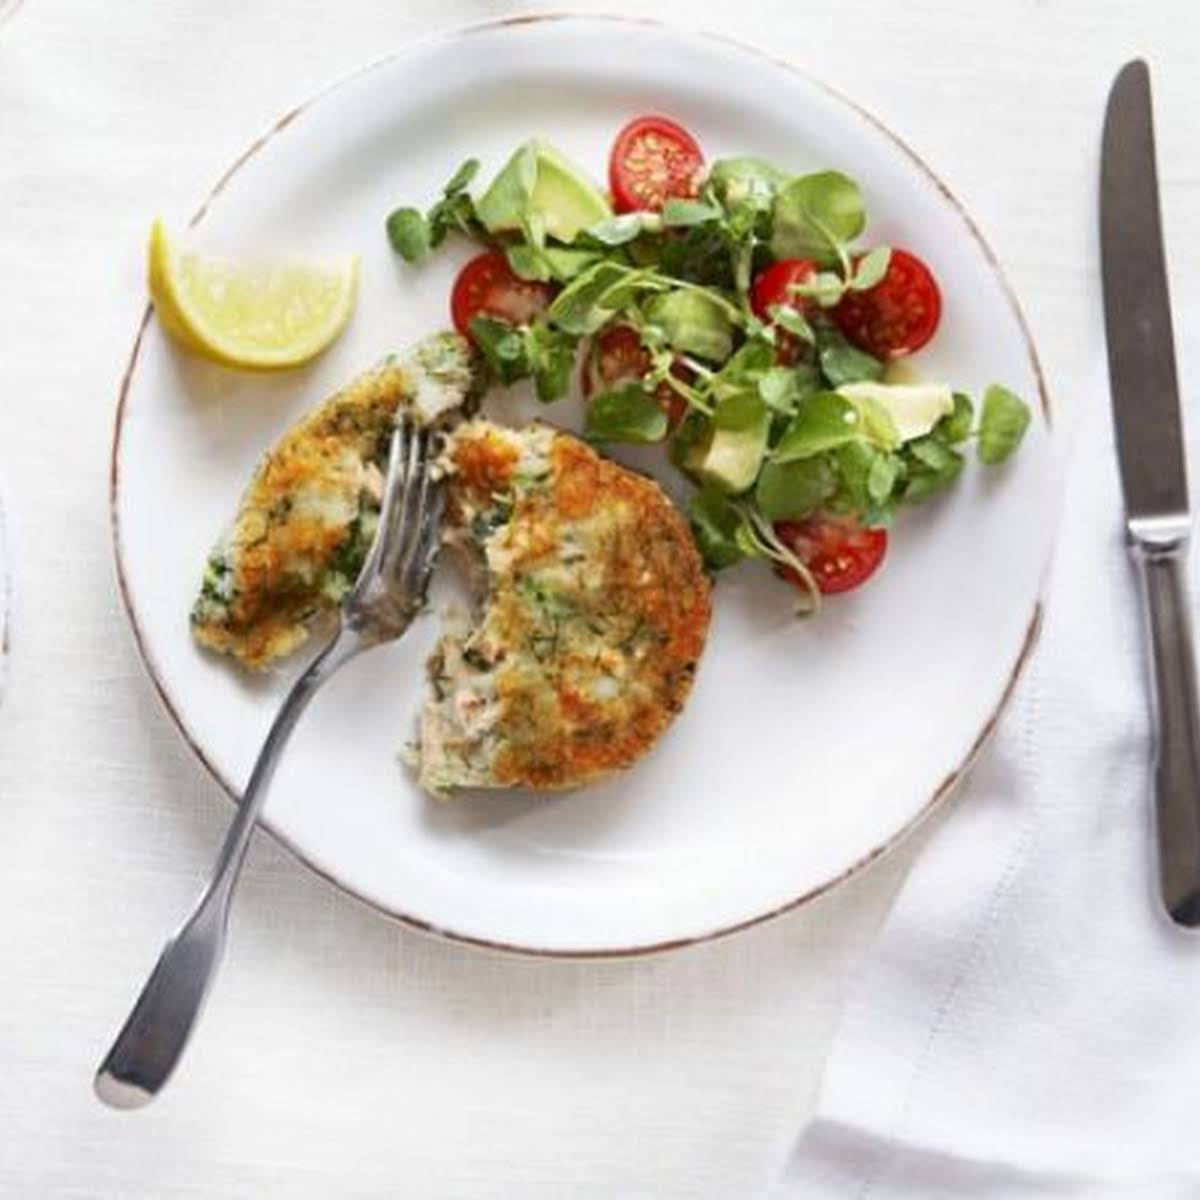 Salmon & Broccoli Cakes  taking into consideration Watercress, Avocado & Tomato Salad